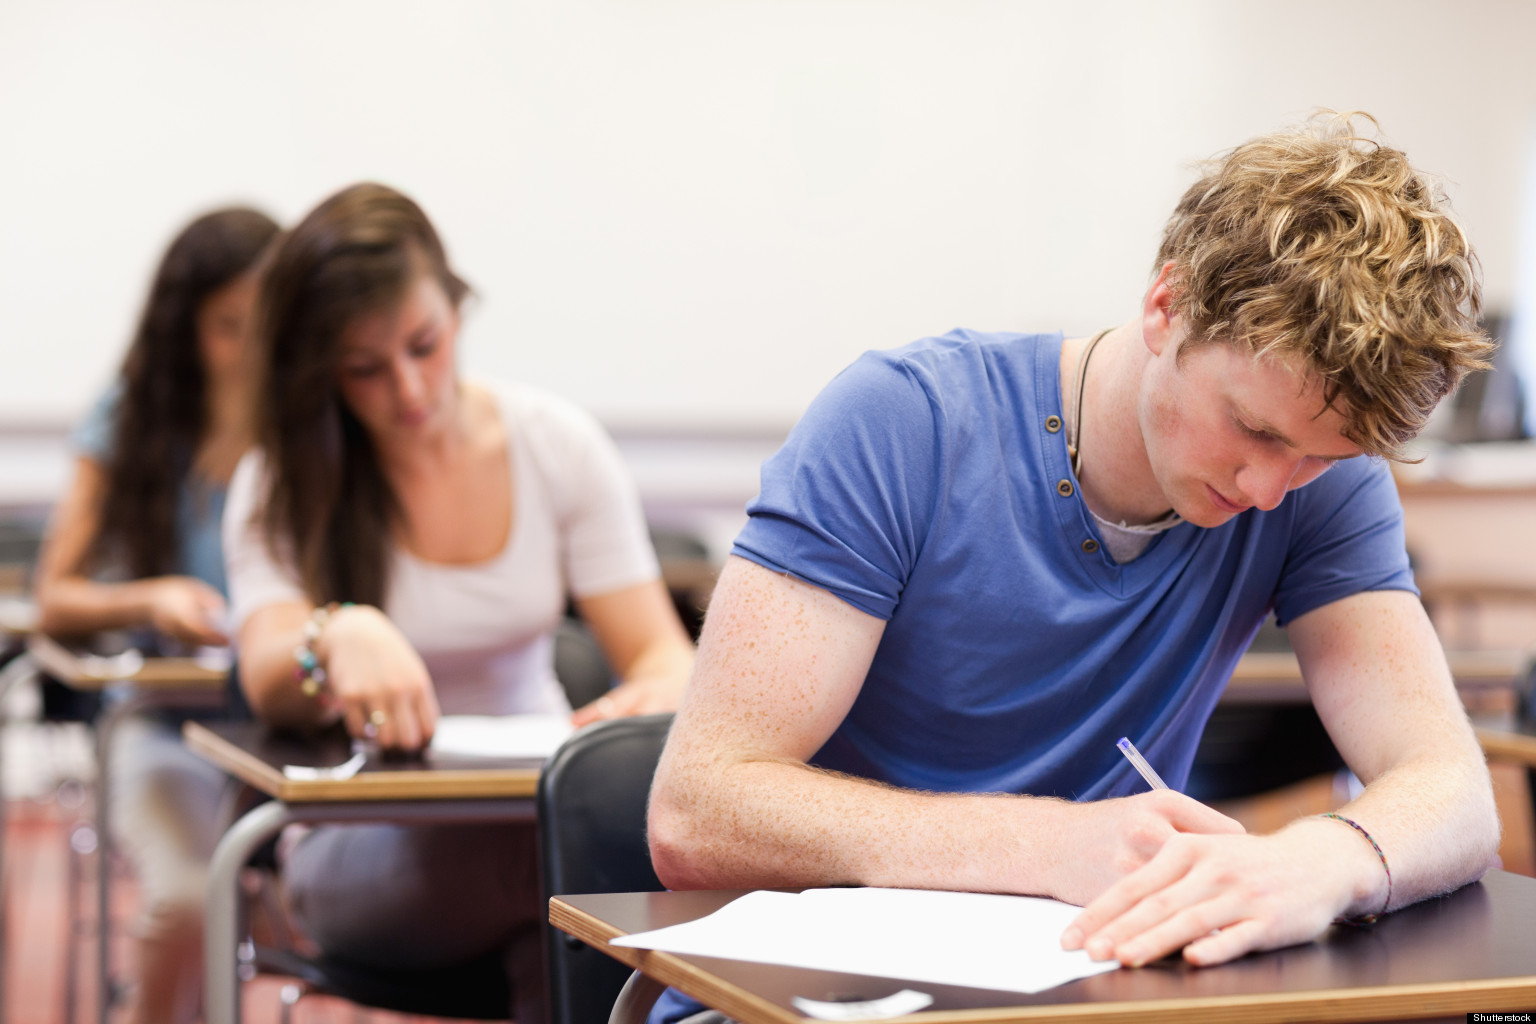 preparing for and taking exams Have you applied for a job and been asked to take a pre-employment test it may seem intimidating, but there's no reason to stress whether you're taking an aptitude test, personality test, or skills test, there are a couple of steps you can take to prepare yourself.